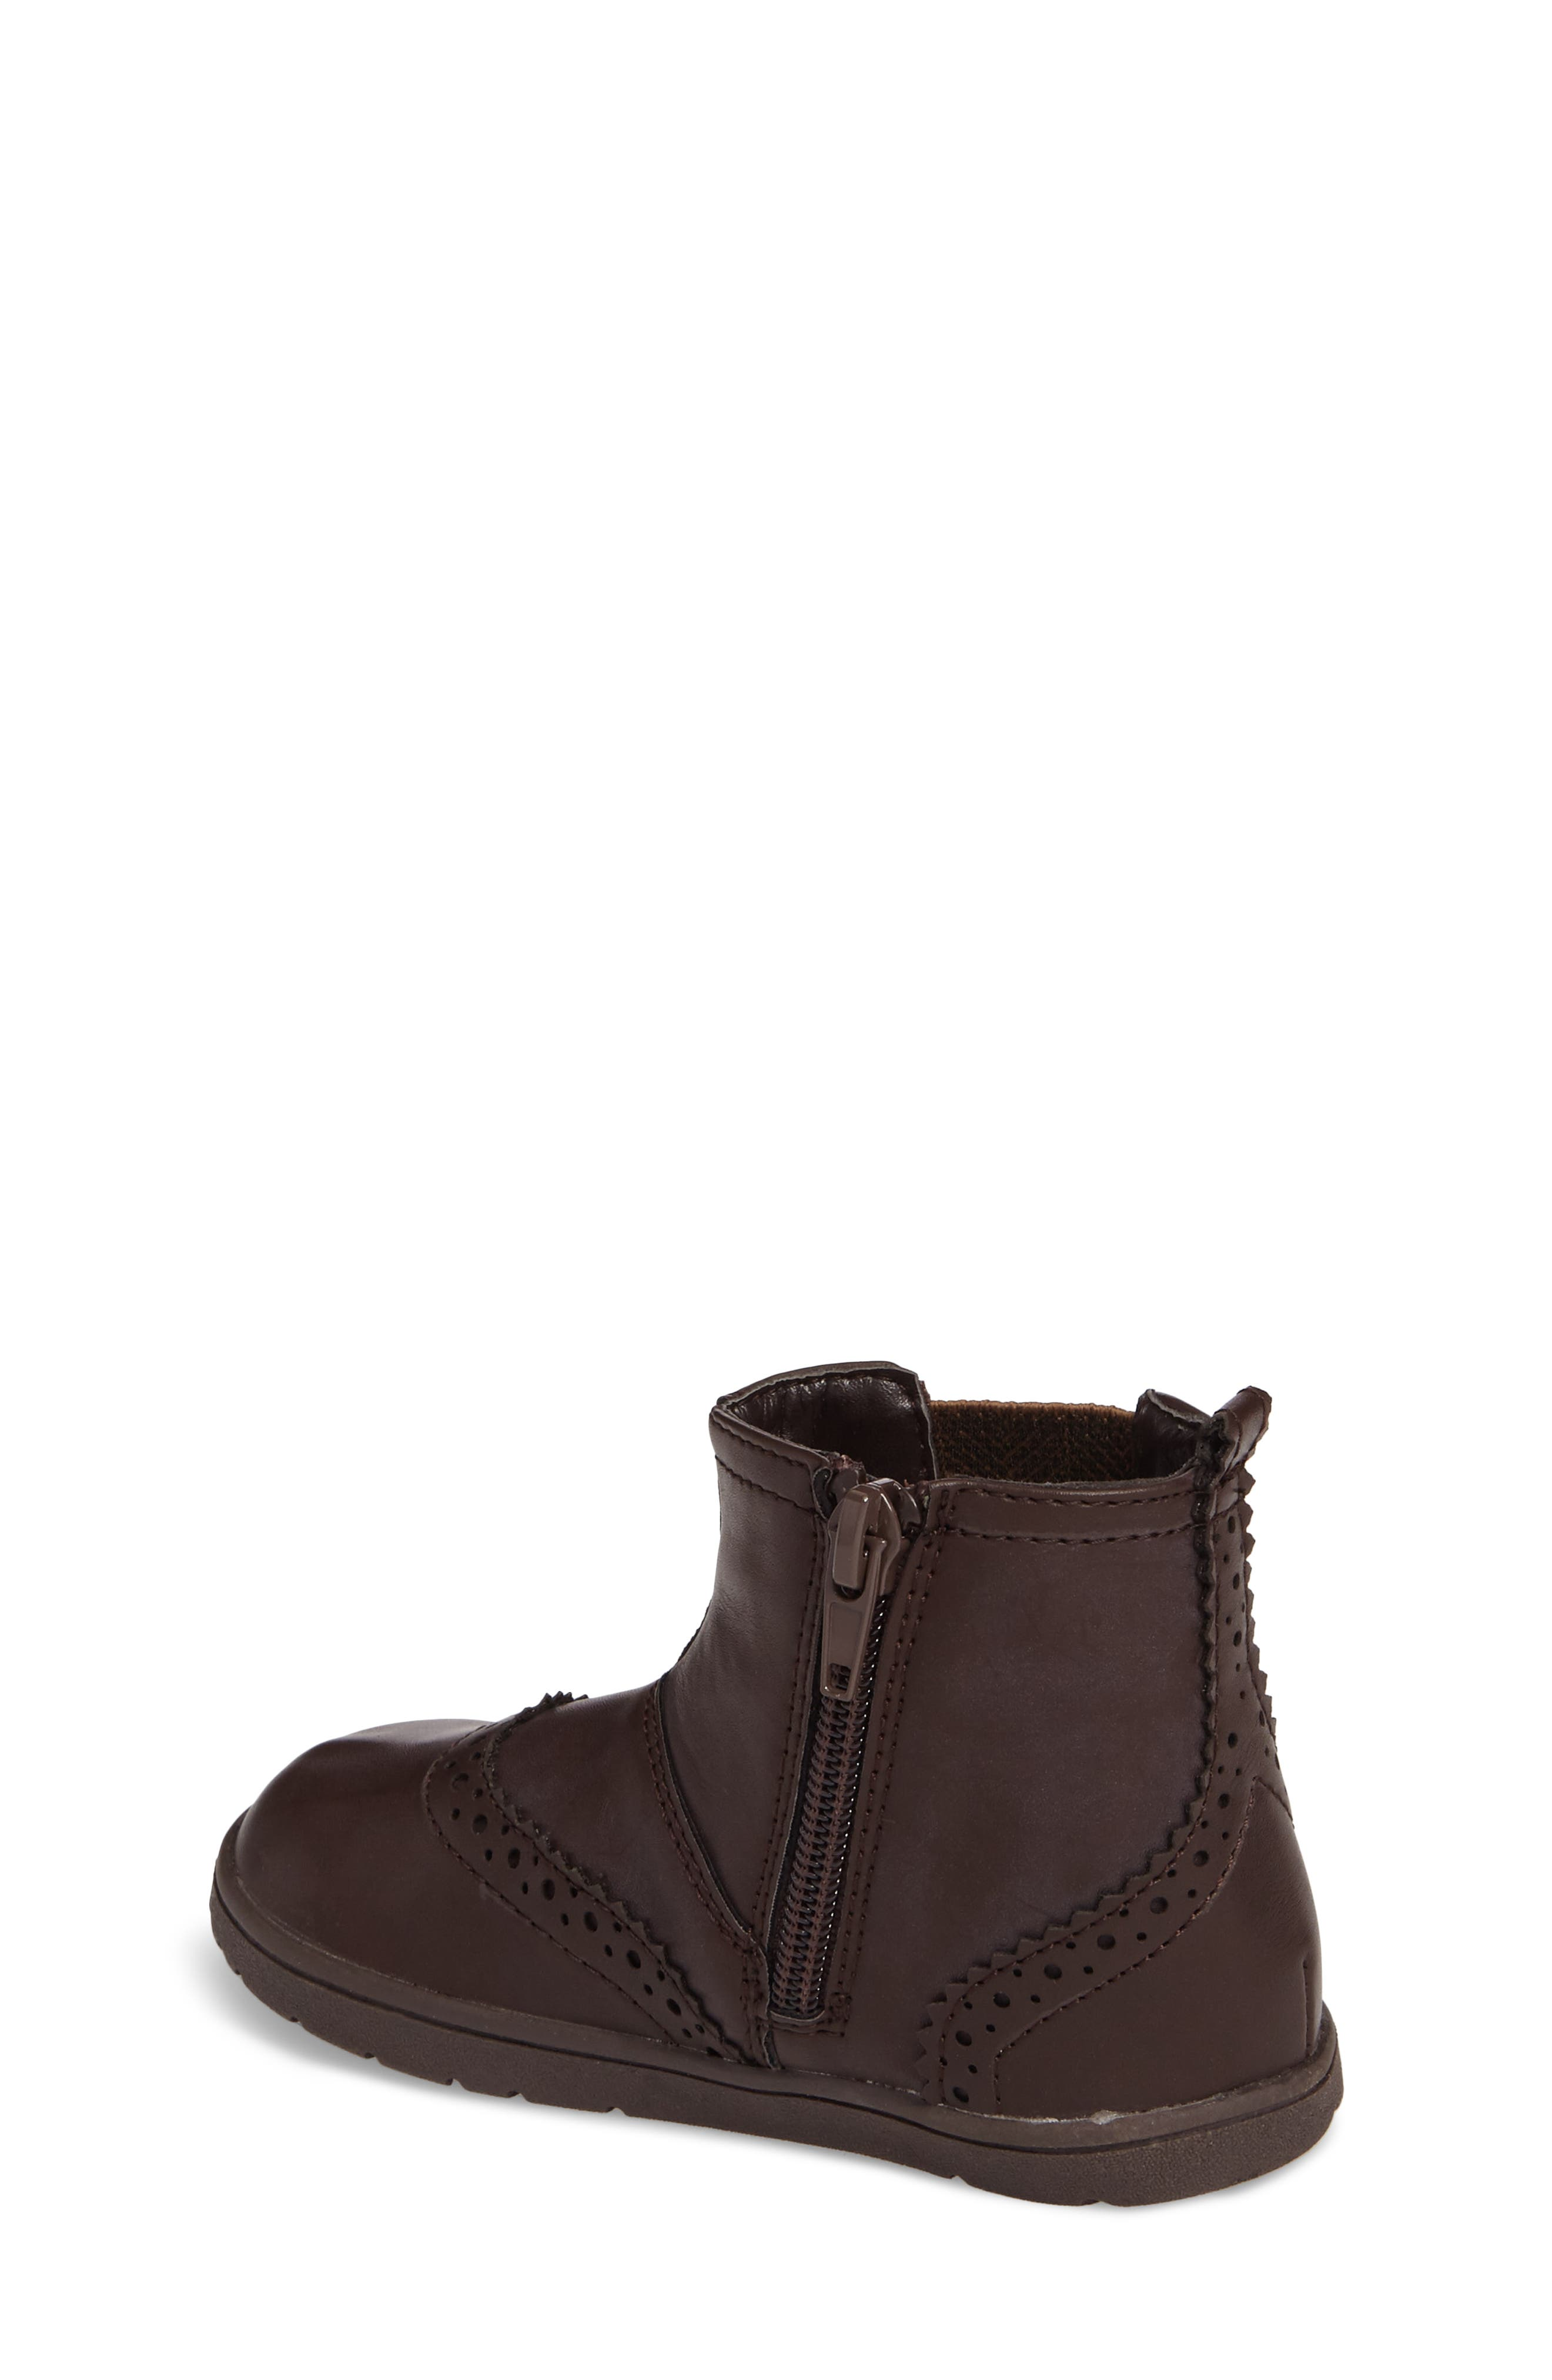 Alternate Image 2  - Kenneth Cole New York Peace Wing Bootie (Baby, Walker & Toddler)